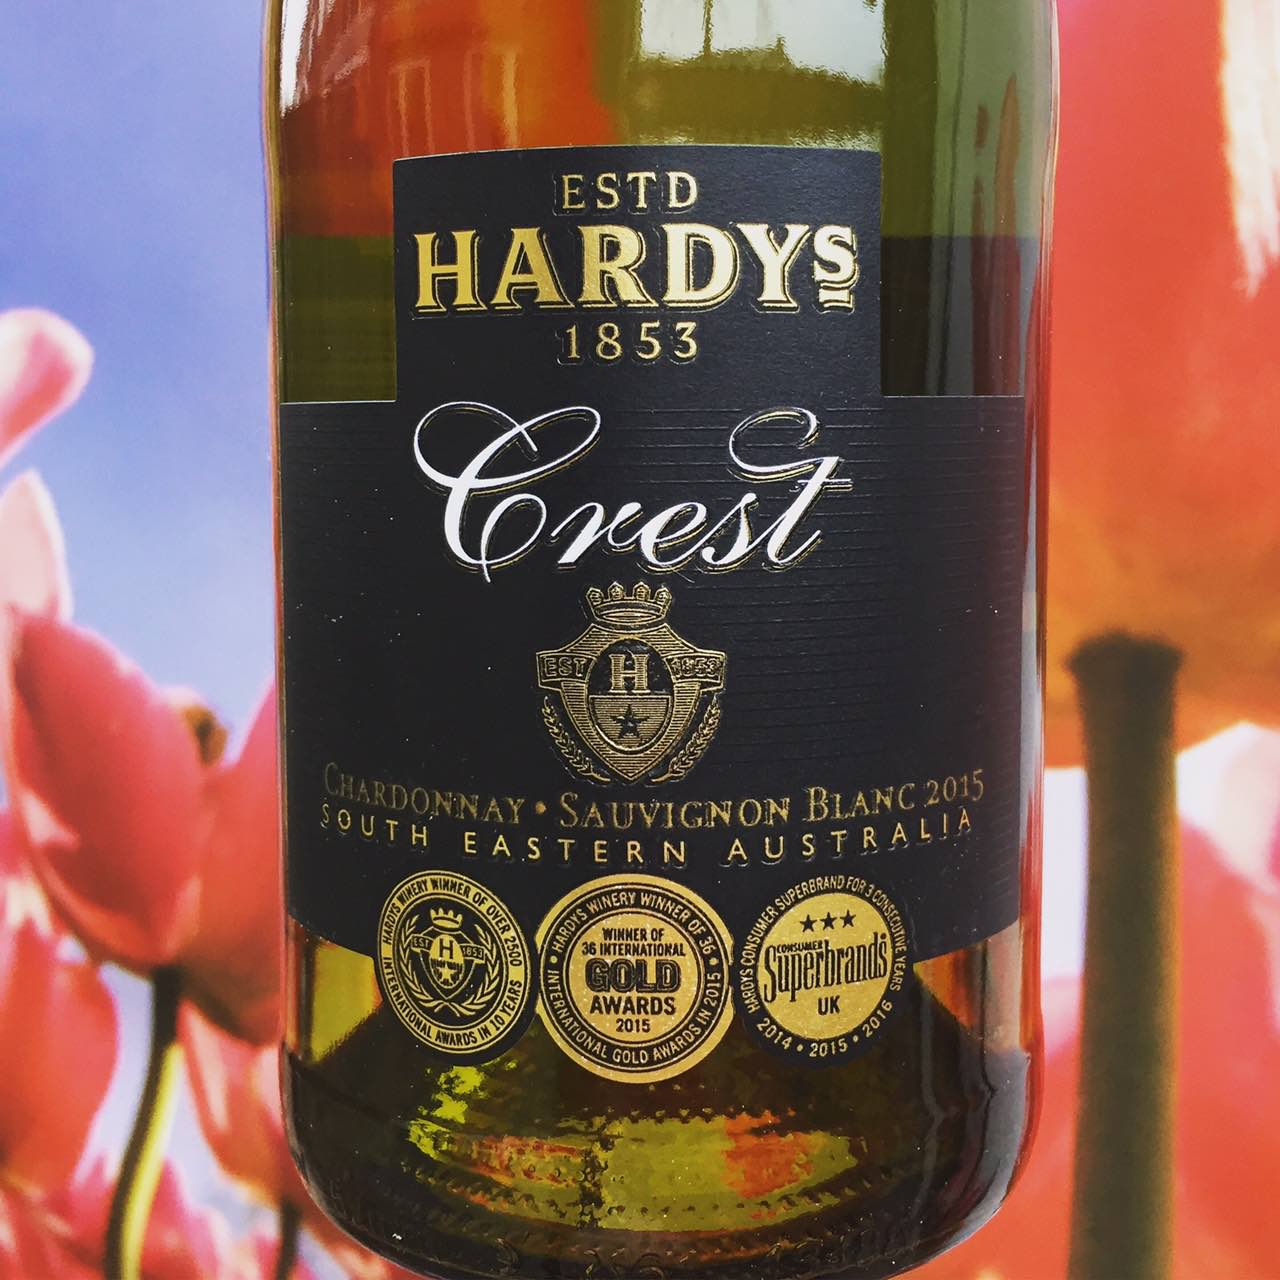 Hardy's Crest – wit, wijnreview